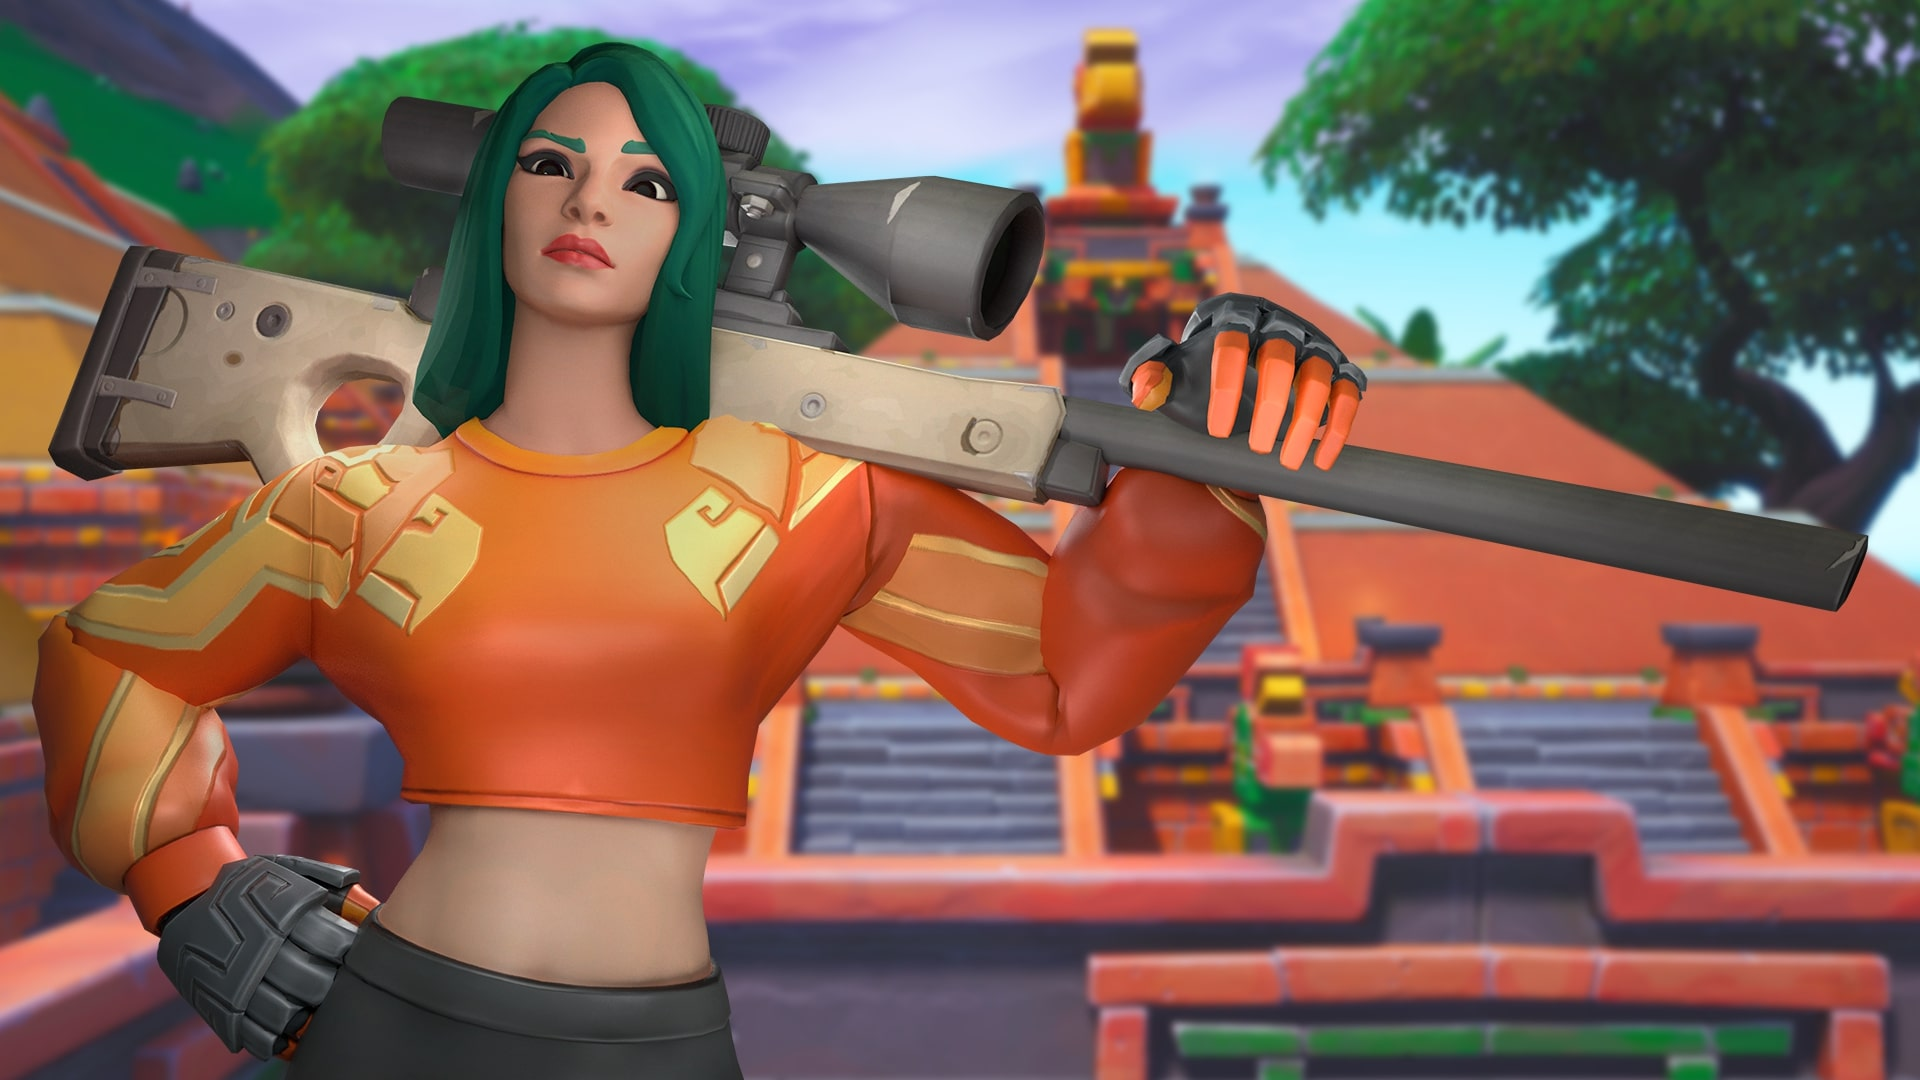 Poised Playmaker Fortnite Skin Wallpapers And Details Mega Themes